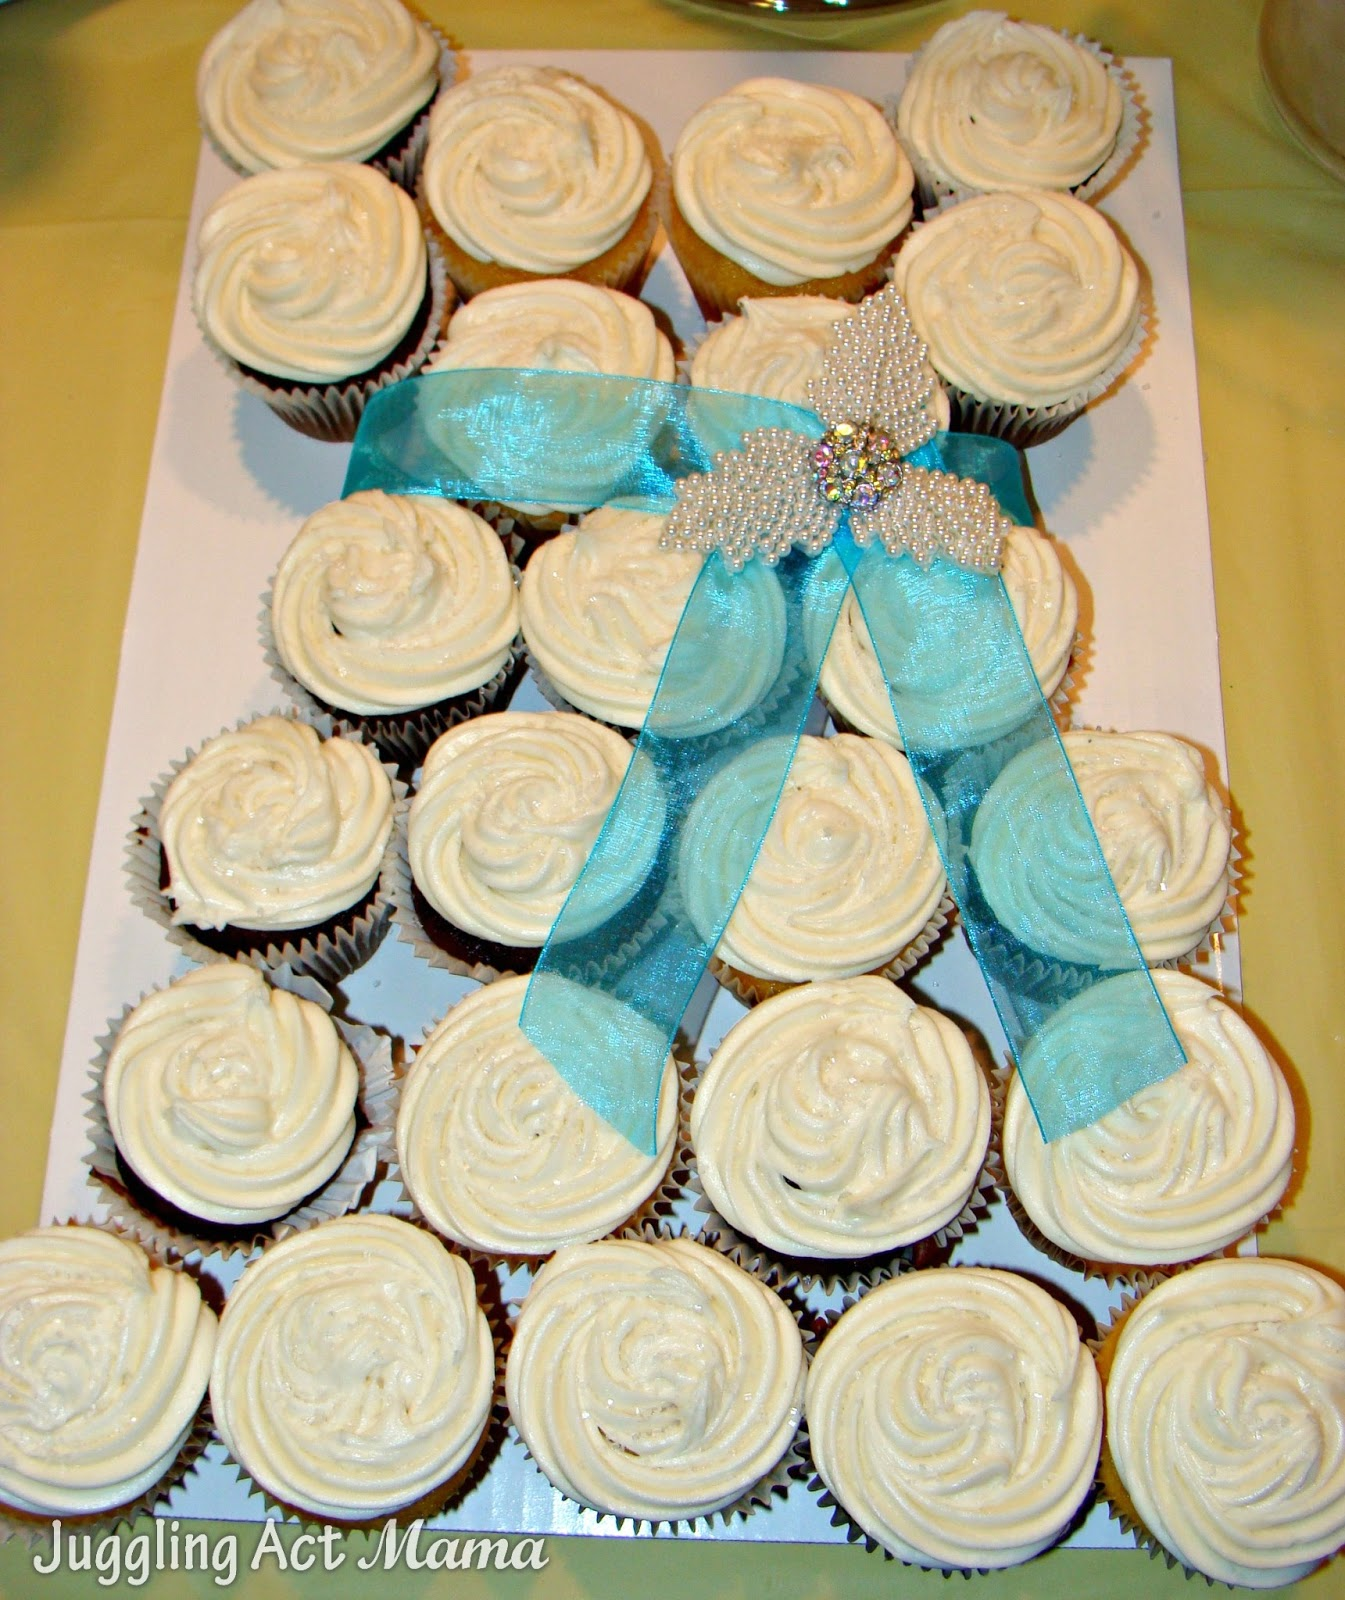 Bridal Shower Cup Cake Wedding Dress - Juggling Act Mama